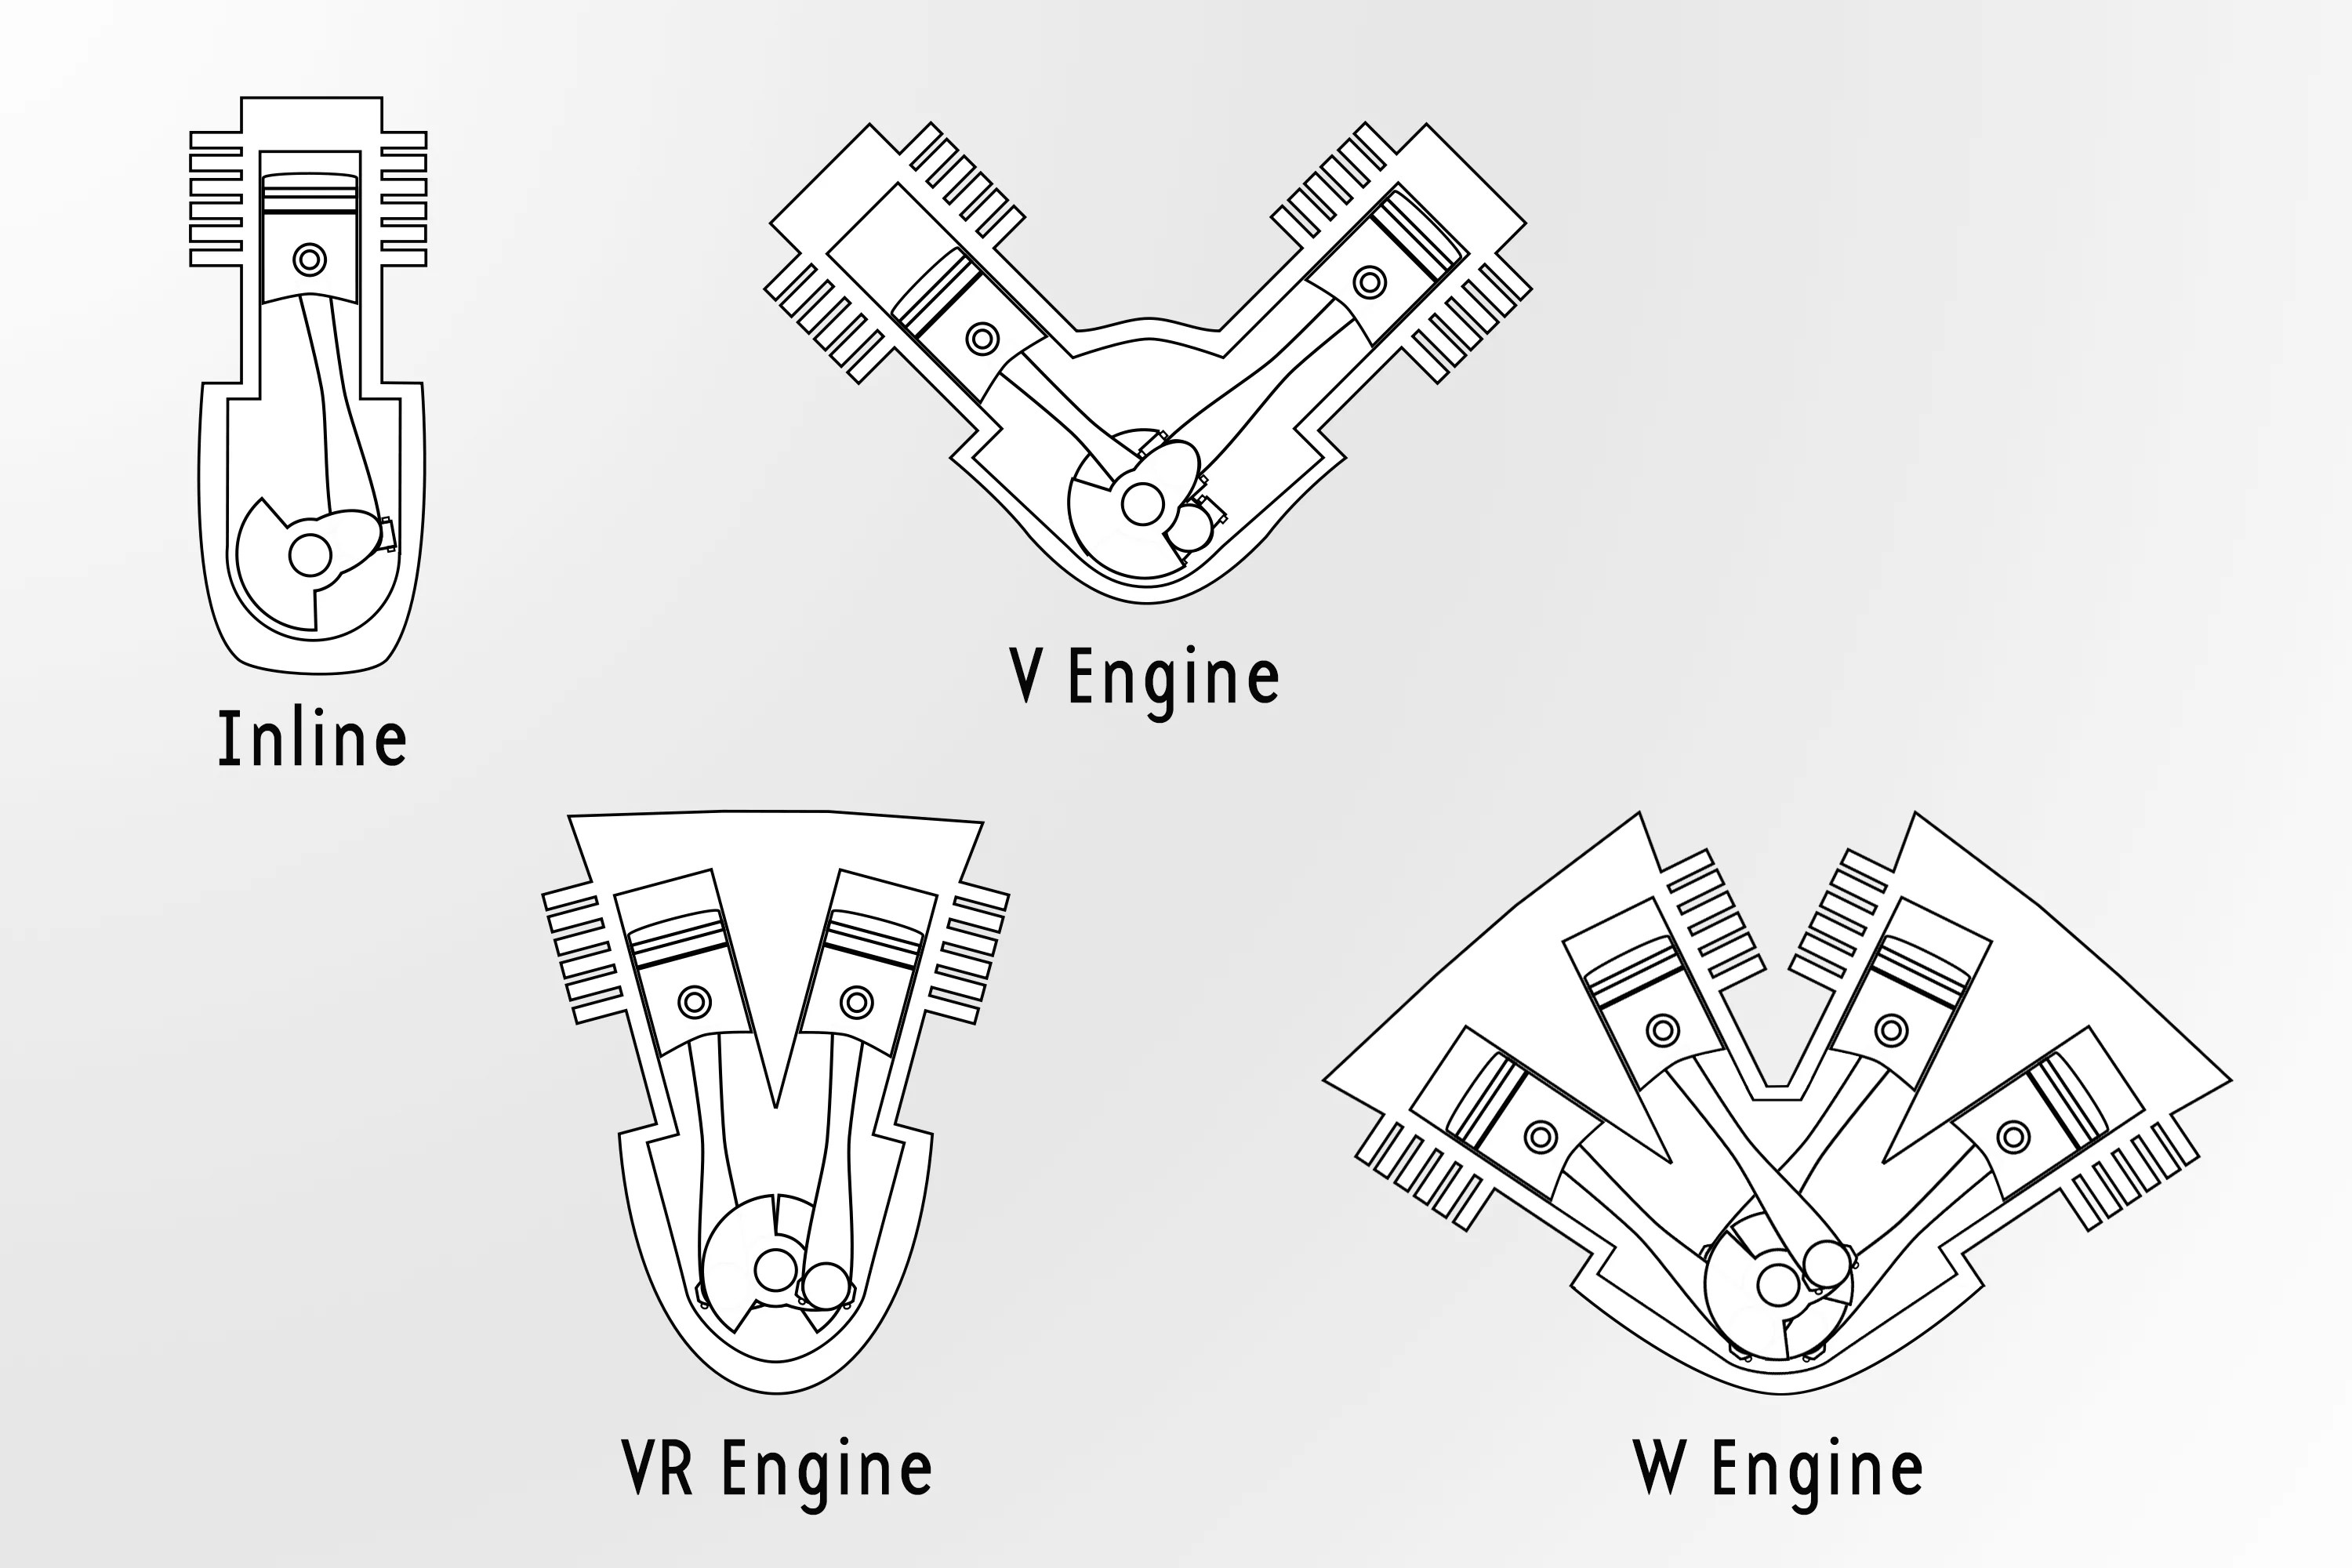 audi a8 wiring diagrams circuits symbols diagrams u2022 rh amdrums co uk 2011 audi a8 engine diagram 2007 audi a8 engine diagram